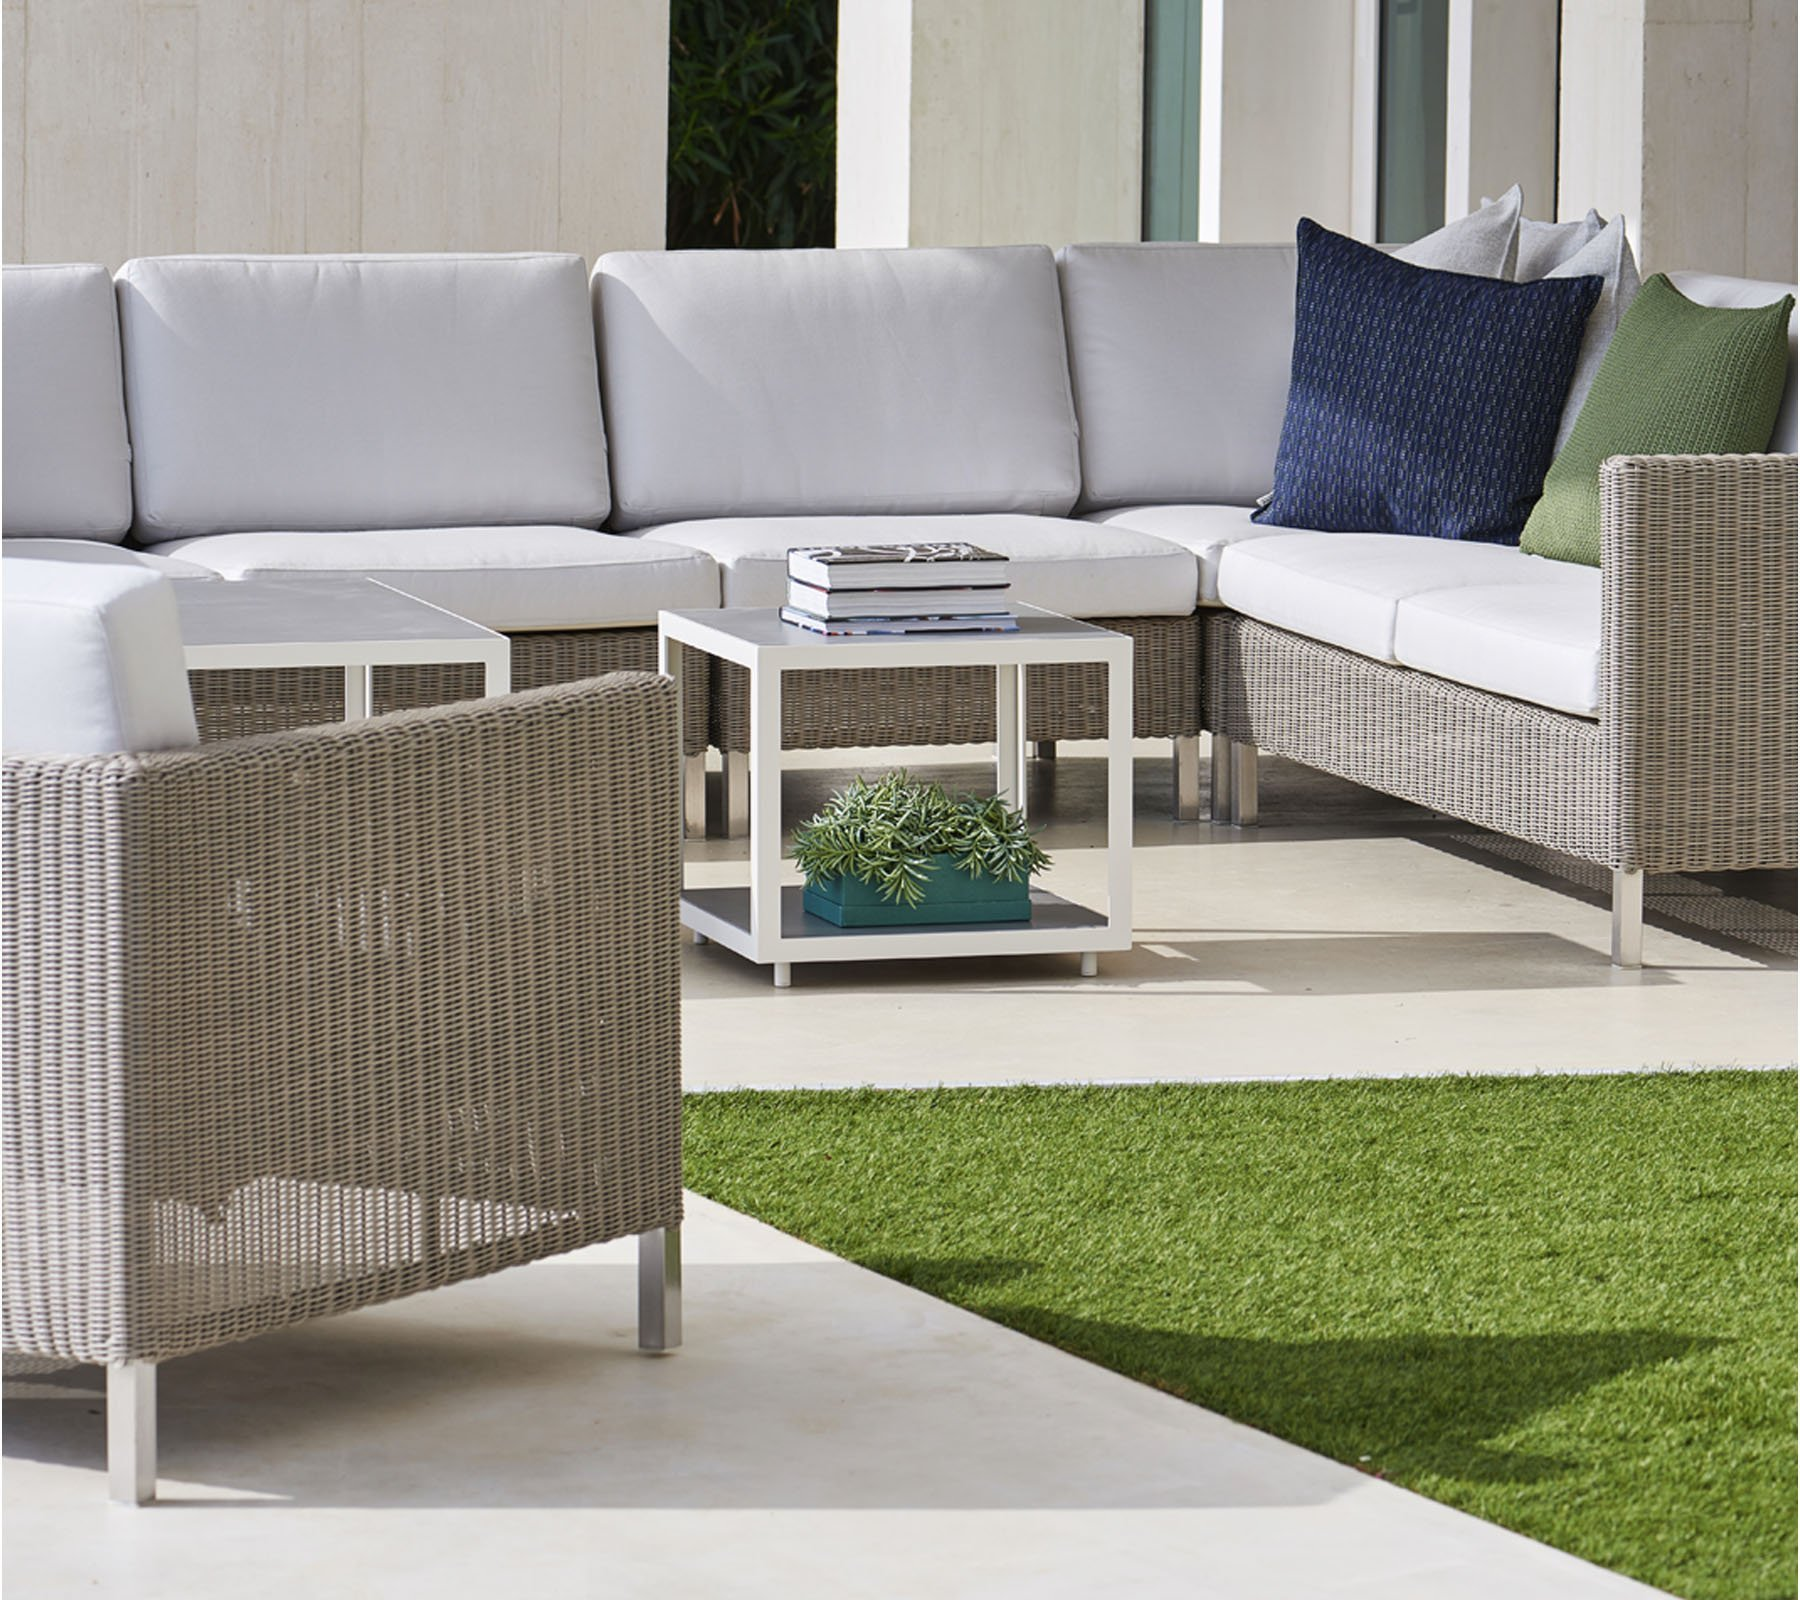 Connect Single Seat Module Sofa modular from Cane-line, designed by Cane-line Design Team